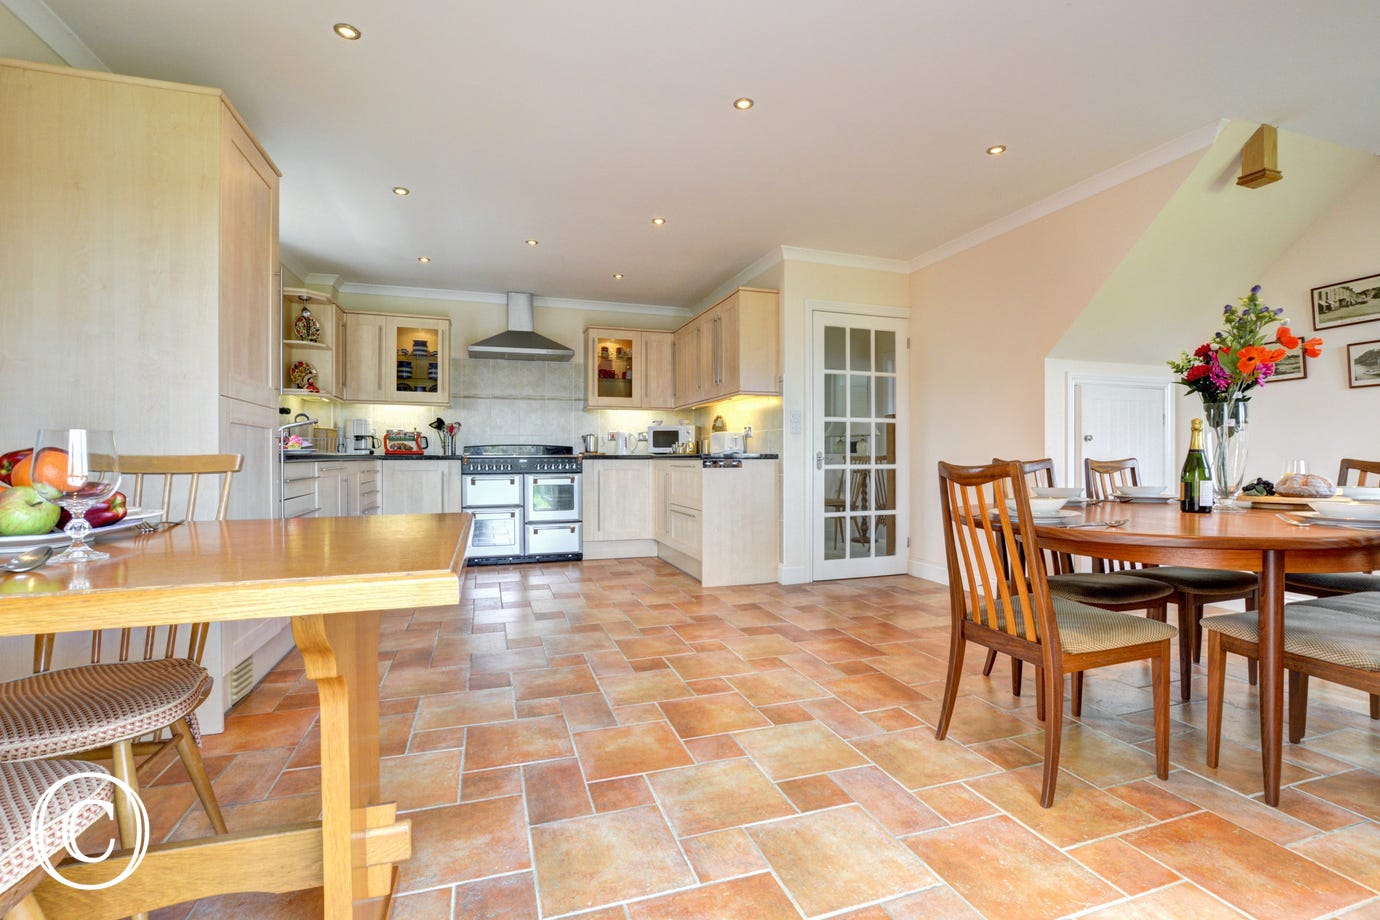 Spacious kitchen area with dining table and a smaller breakfast table & chairs ideal for the children